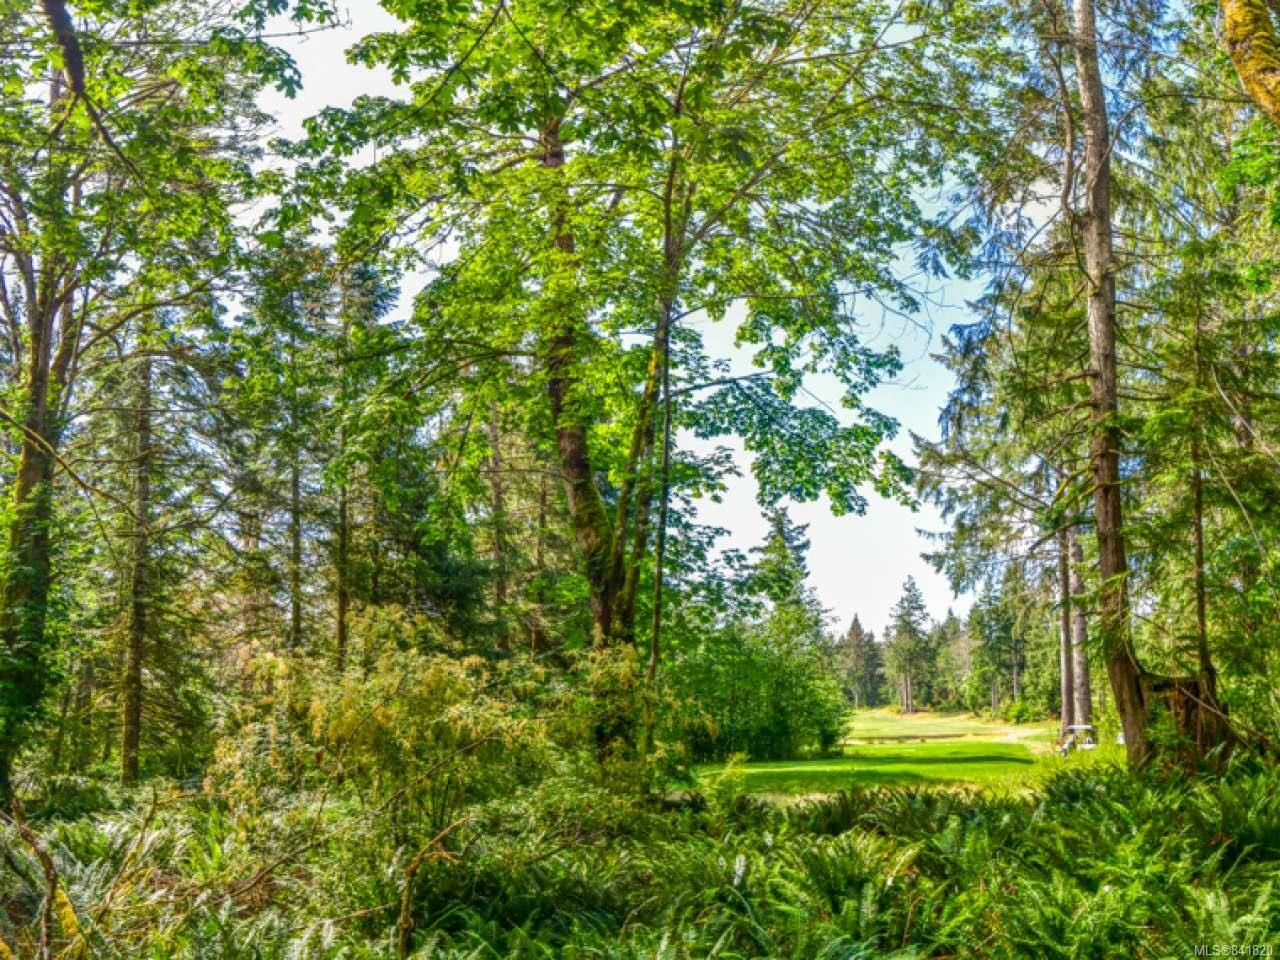 SL 8 Fir Crest Acres!  2.21 acre fully serviced lot fronting Fairway 3!